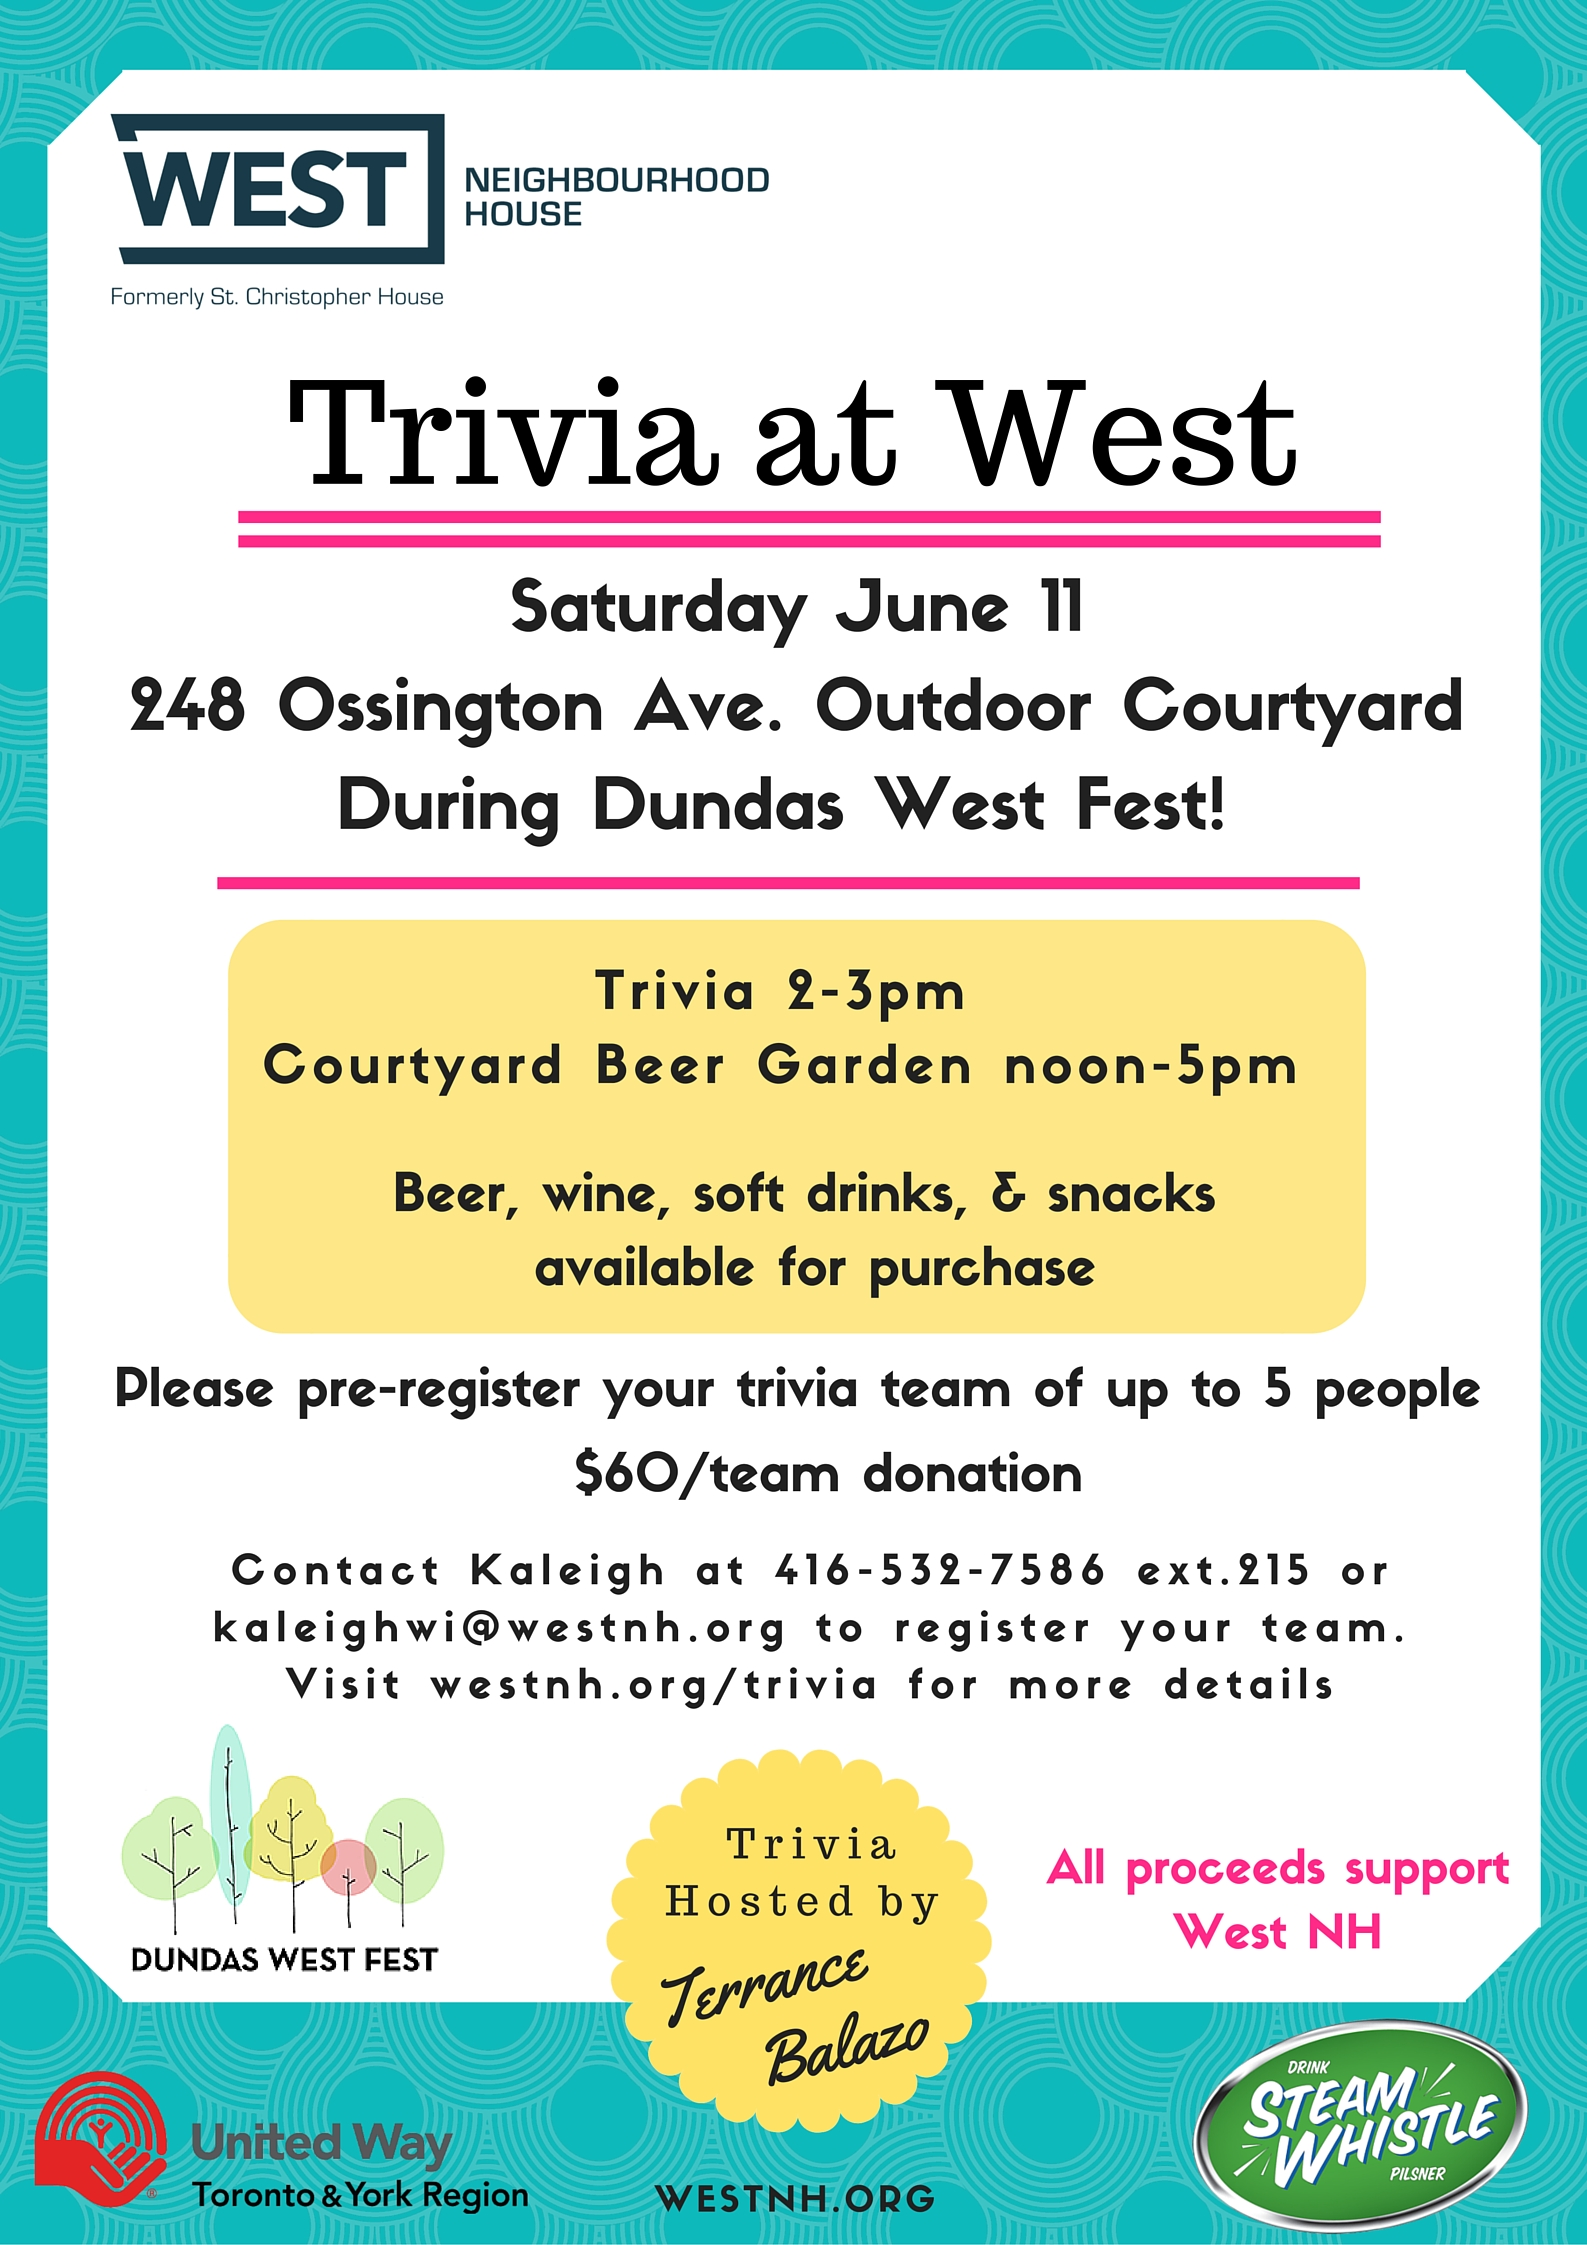 Trivia at West on June 11th